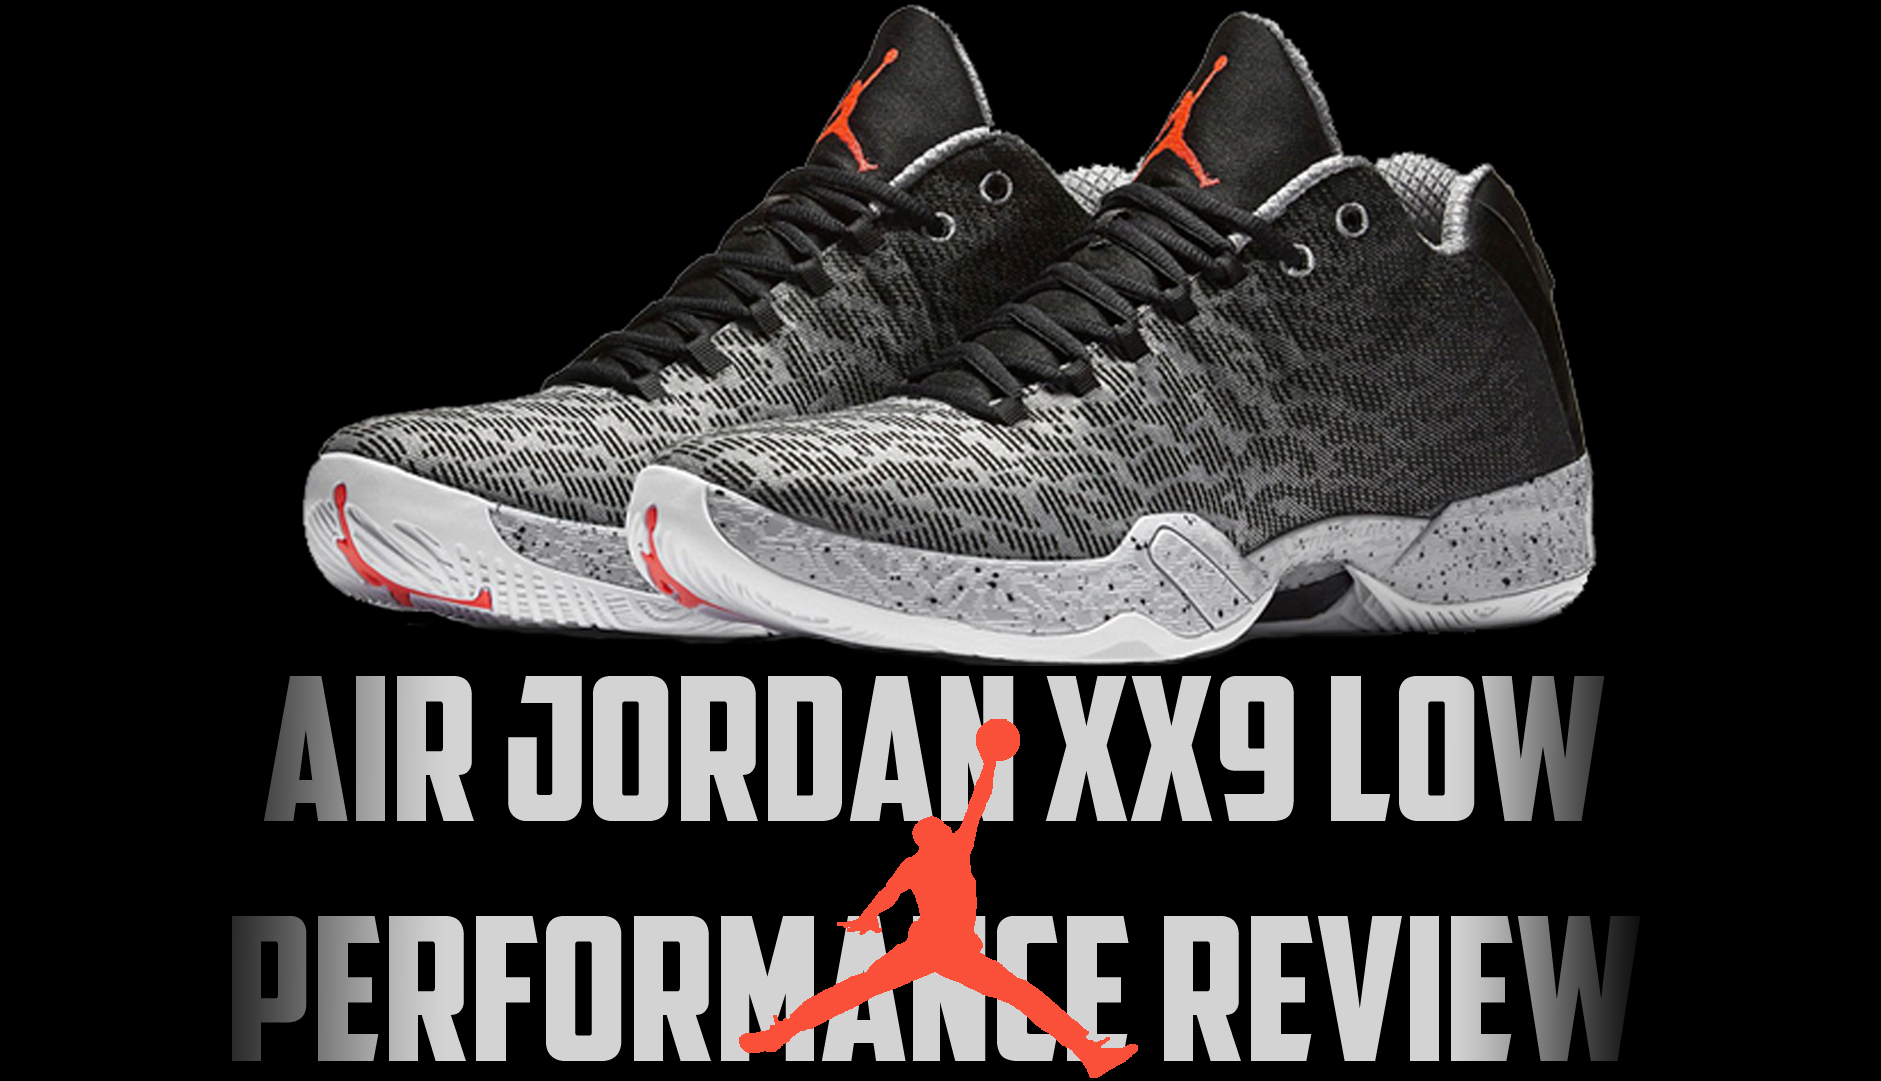 Air Jordan XX9 Low Performance Review Main